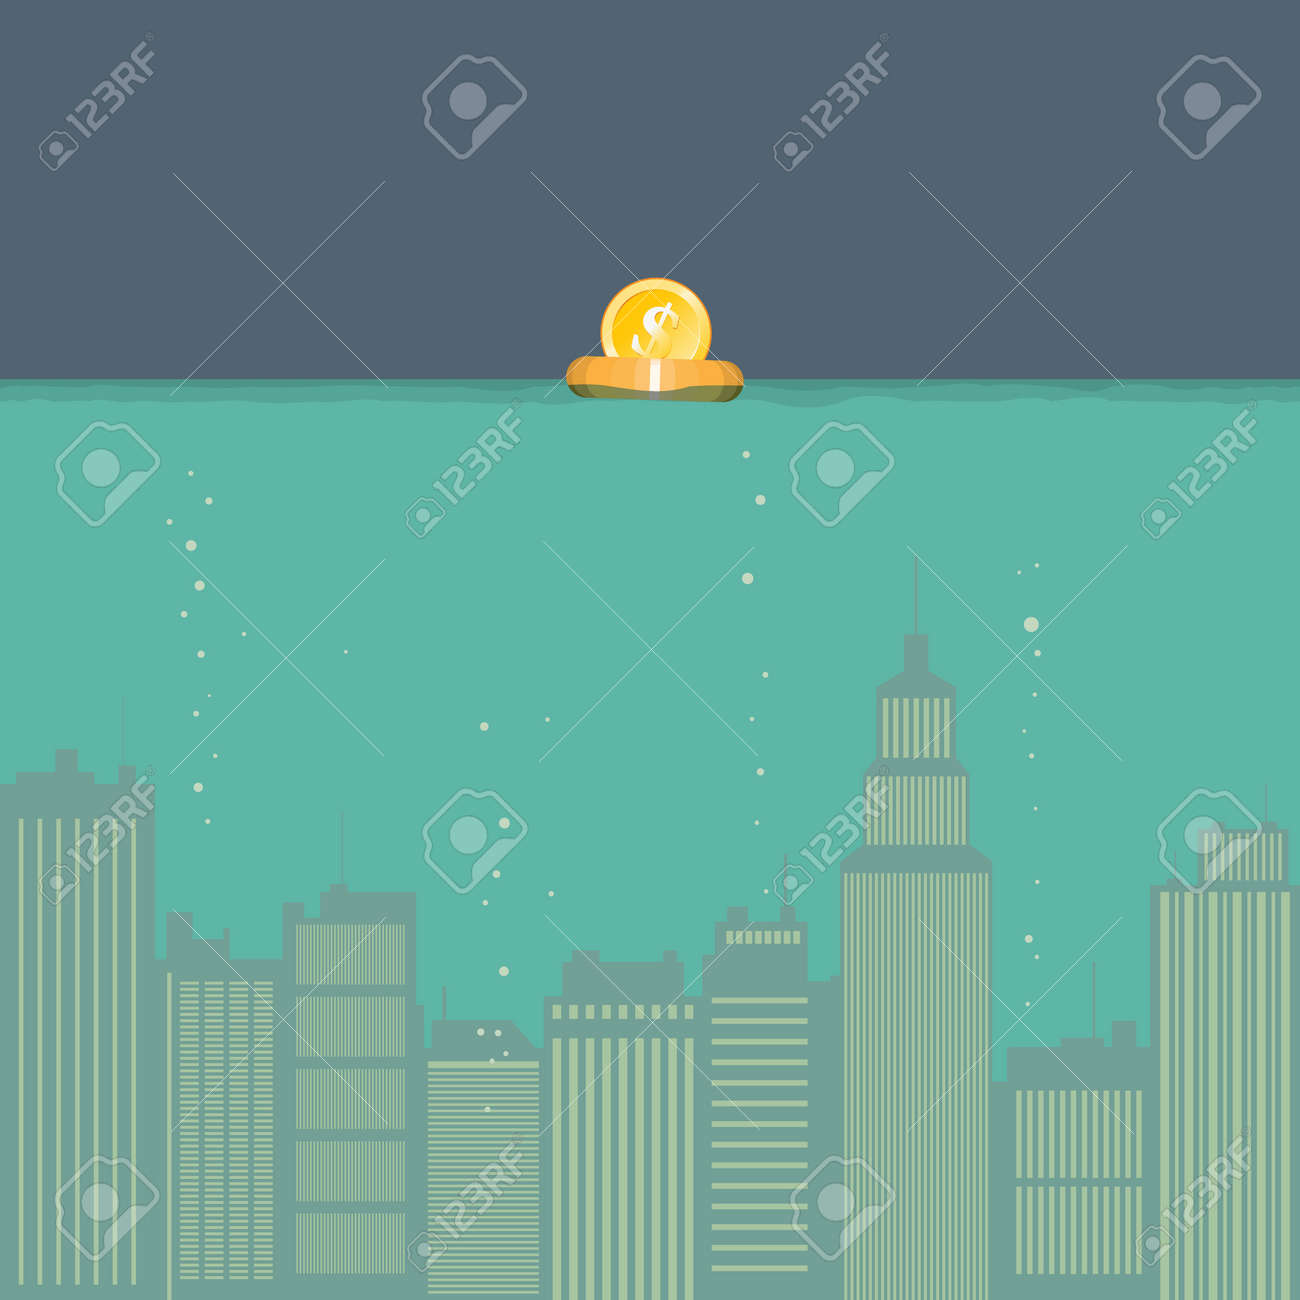 illustration of submerged city with a dollar coin floating on a rescue ring. Stock Vector - 18286761